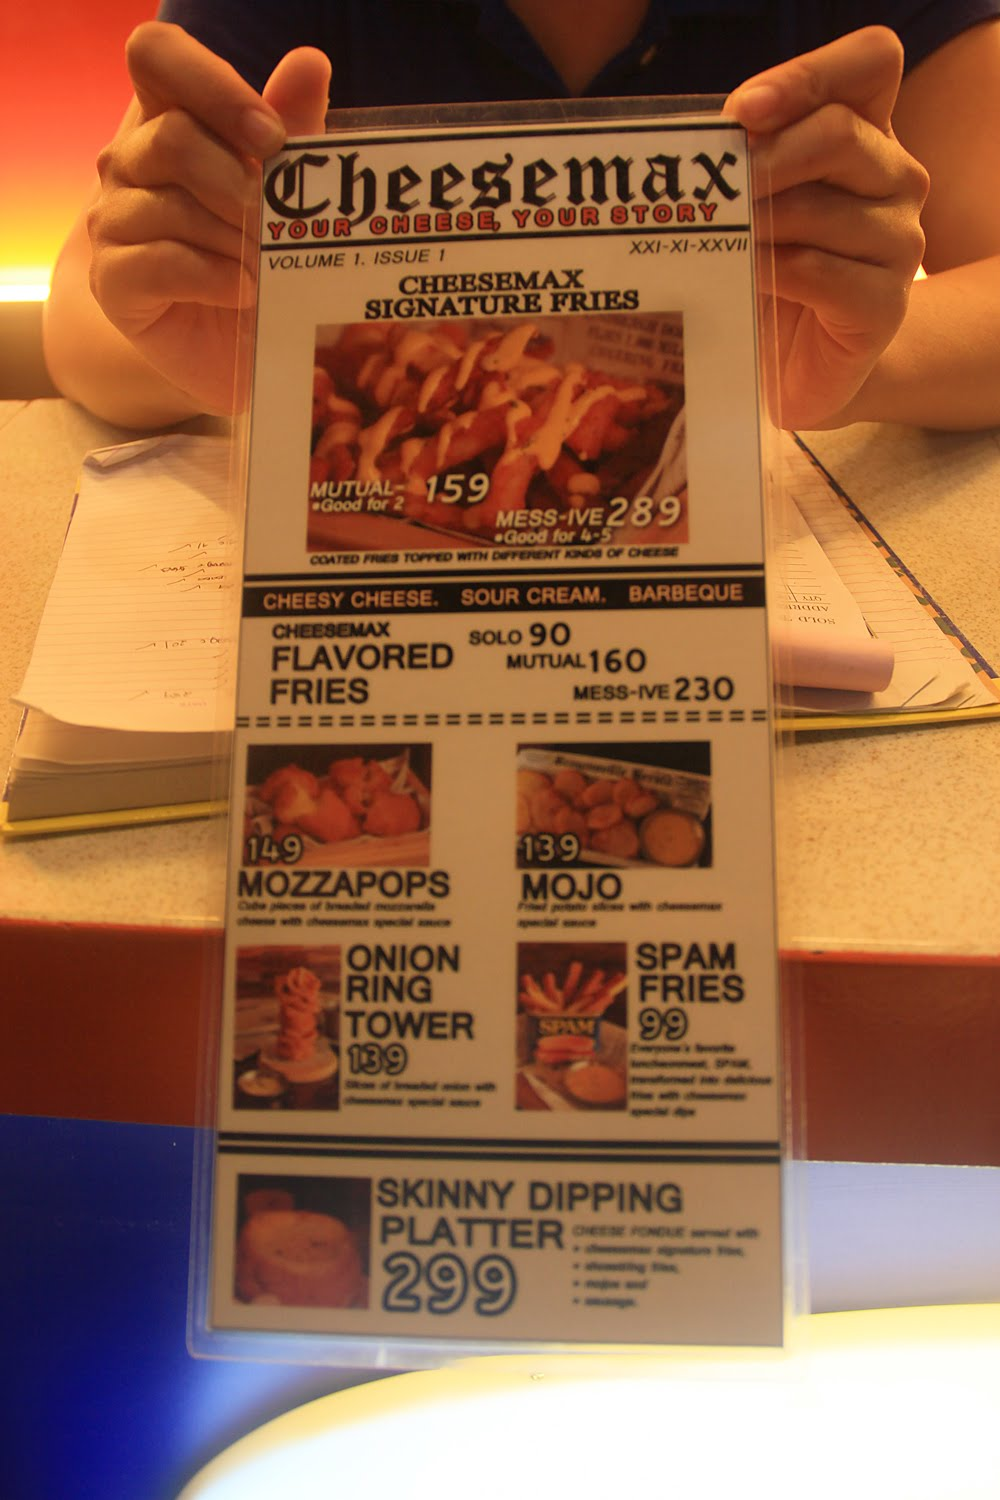 Cheesemax Menu